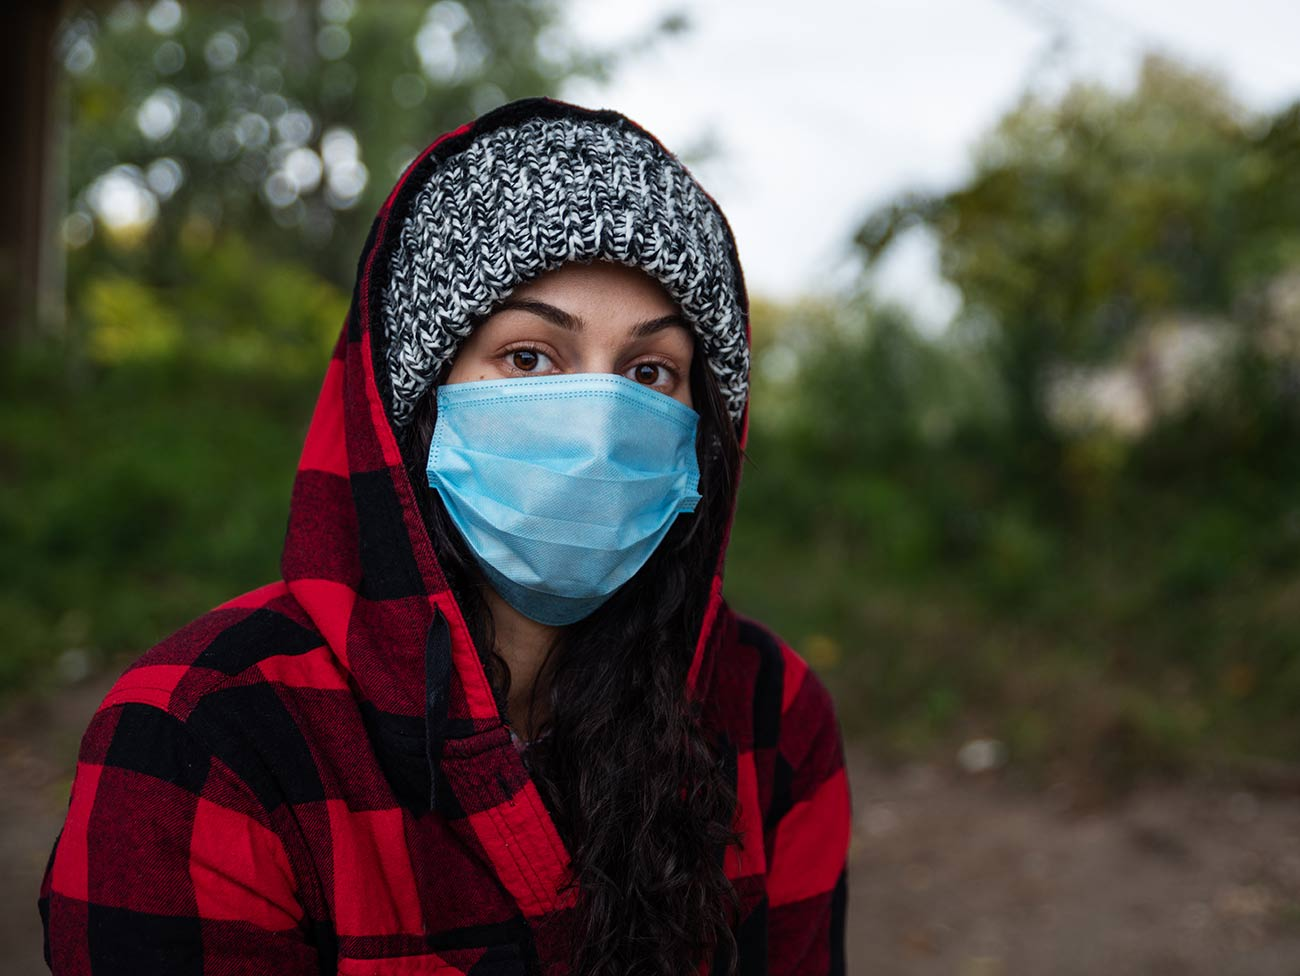 young woman outdoors wearing hooded flannel top and mask